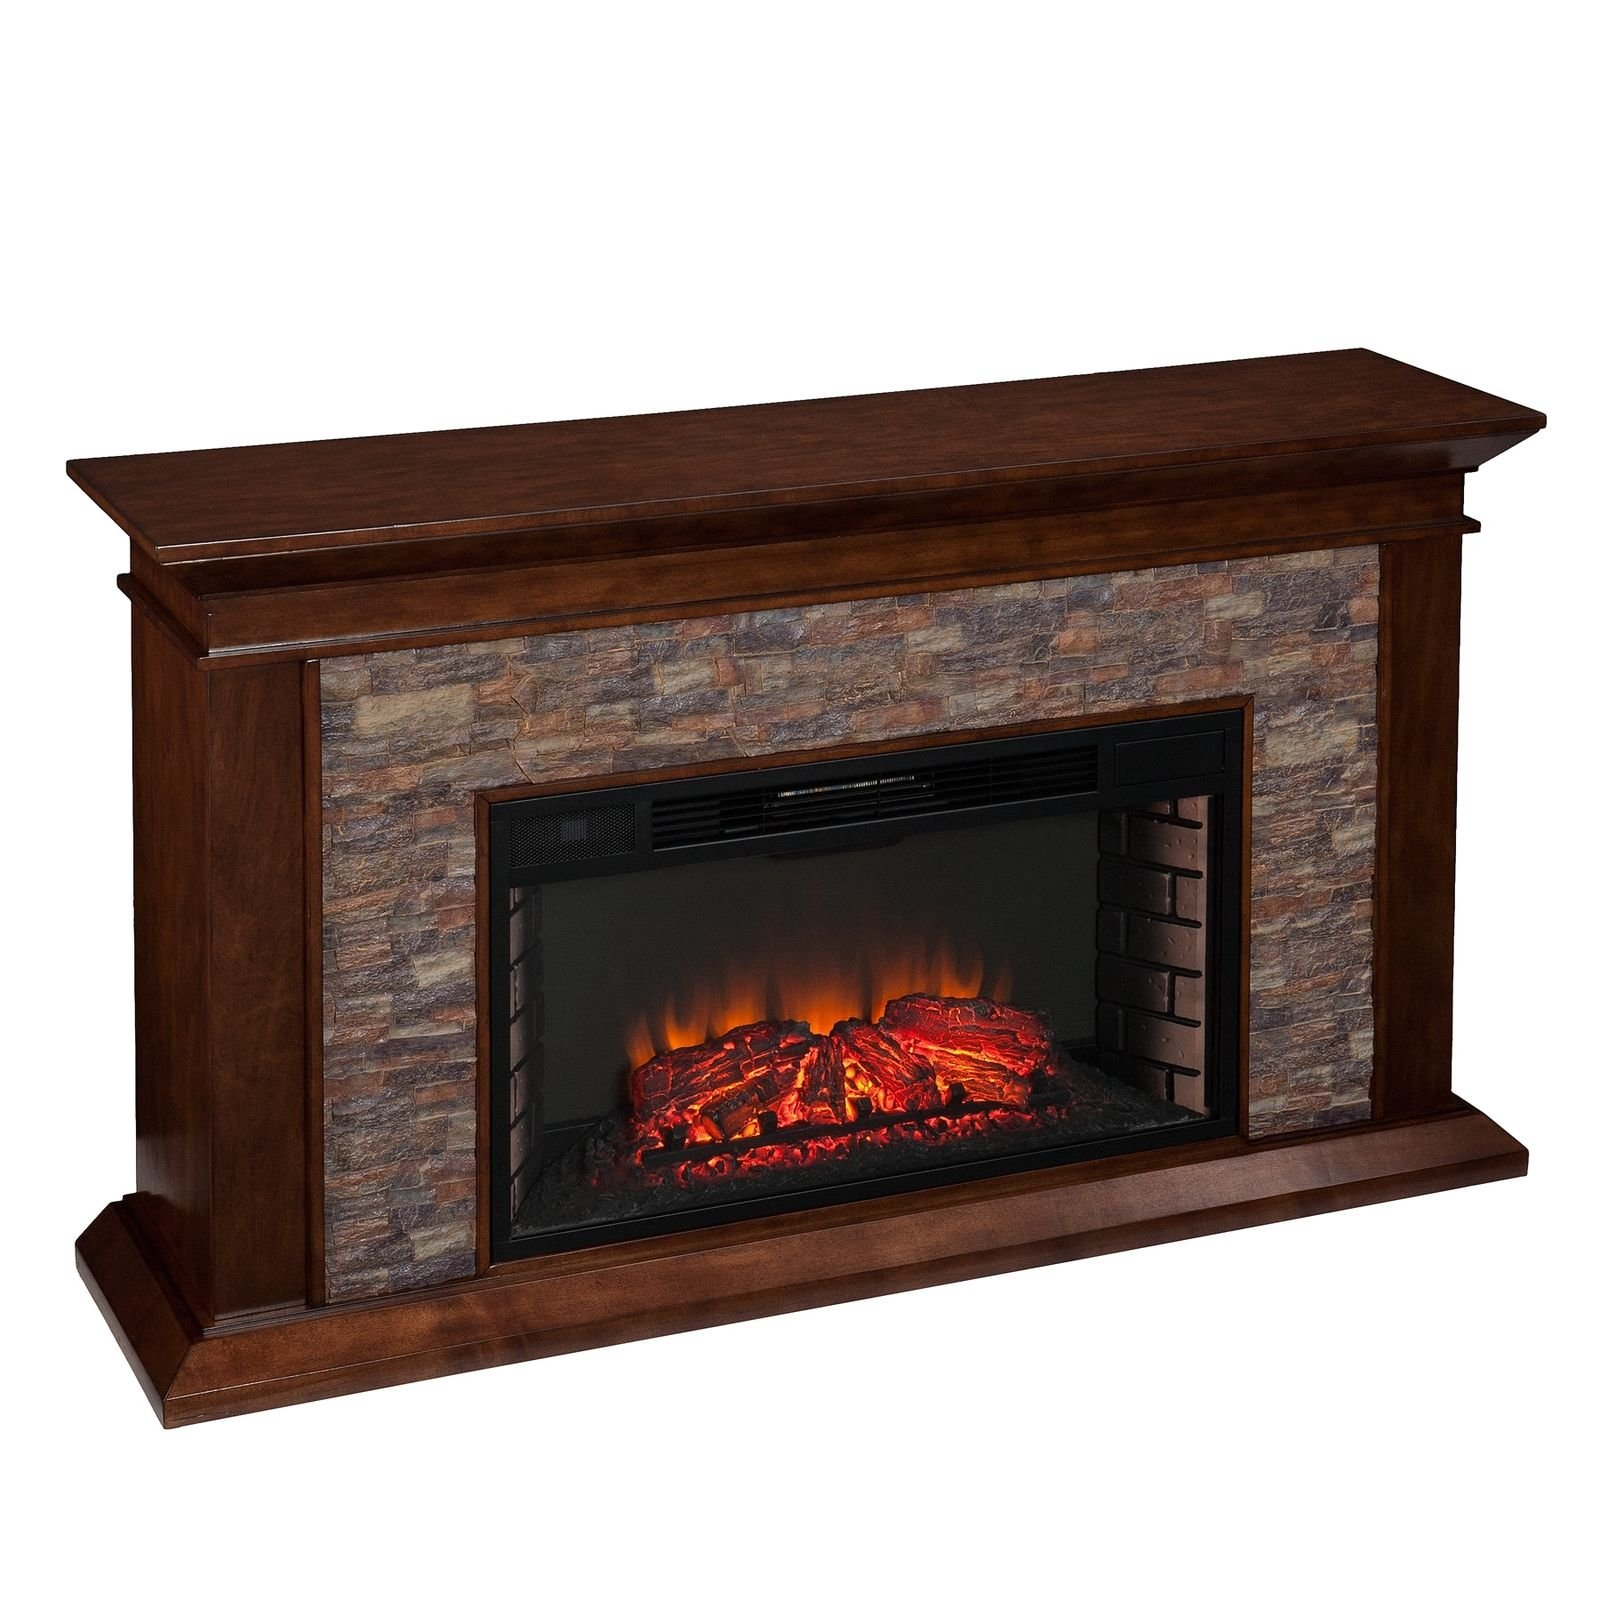 Harper Blvd Utley 60-inch Simulated Stone Electric Fireplace Extra wide fireplace ignites senses